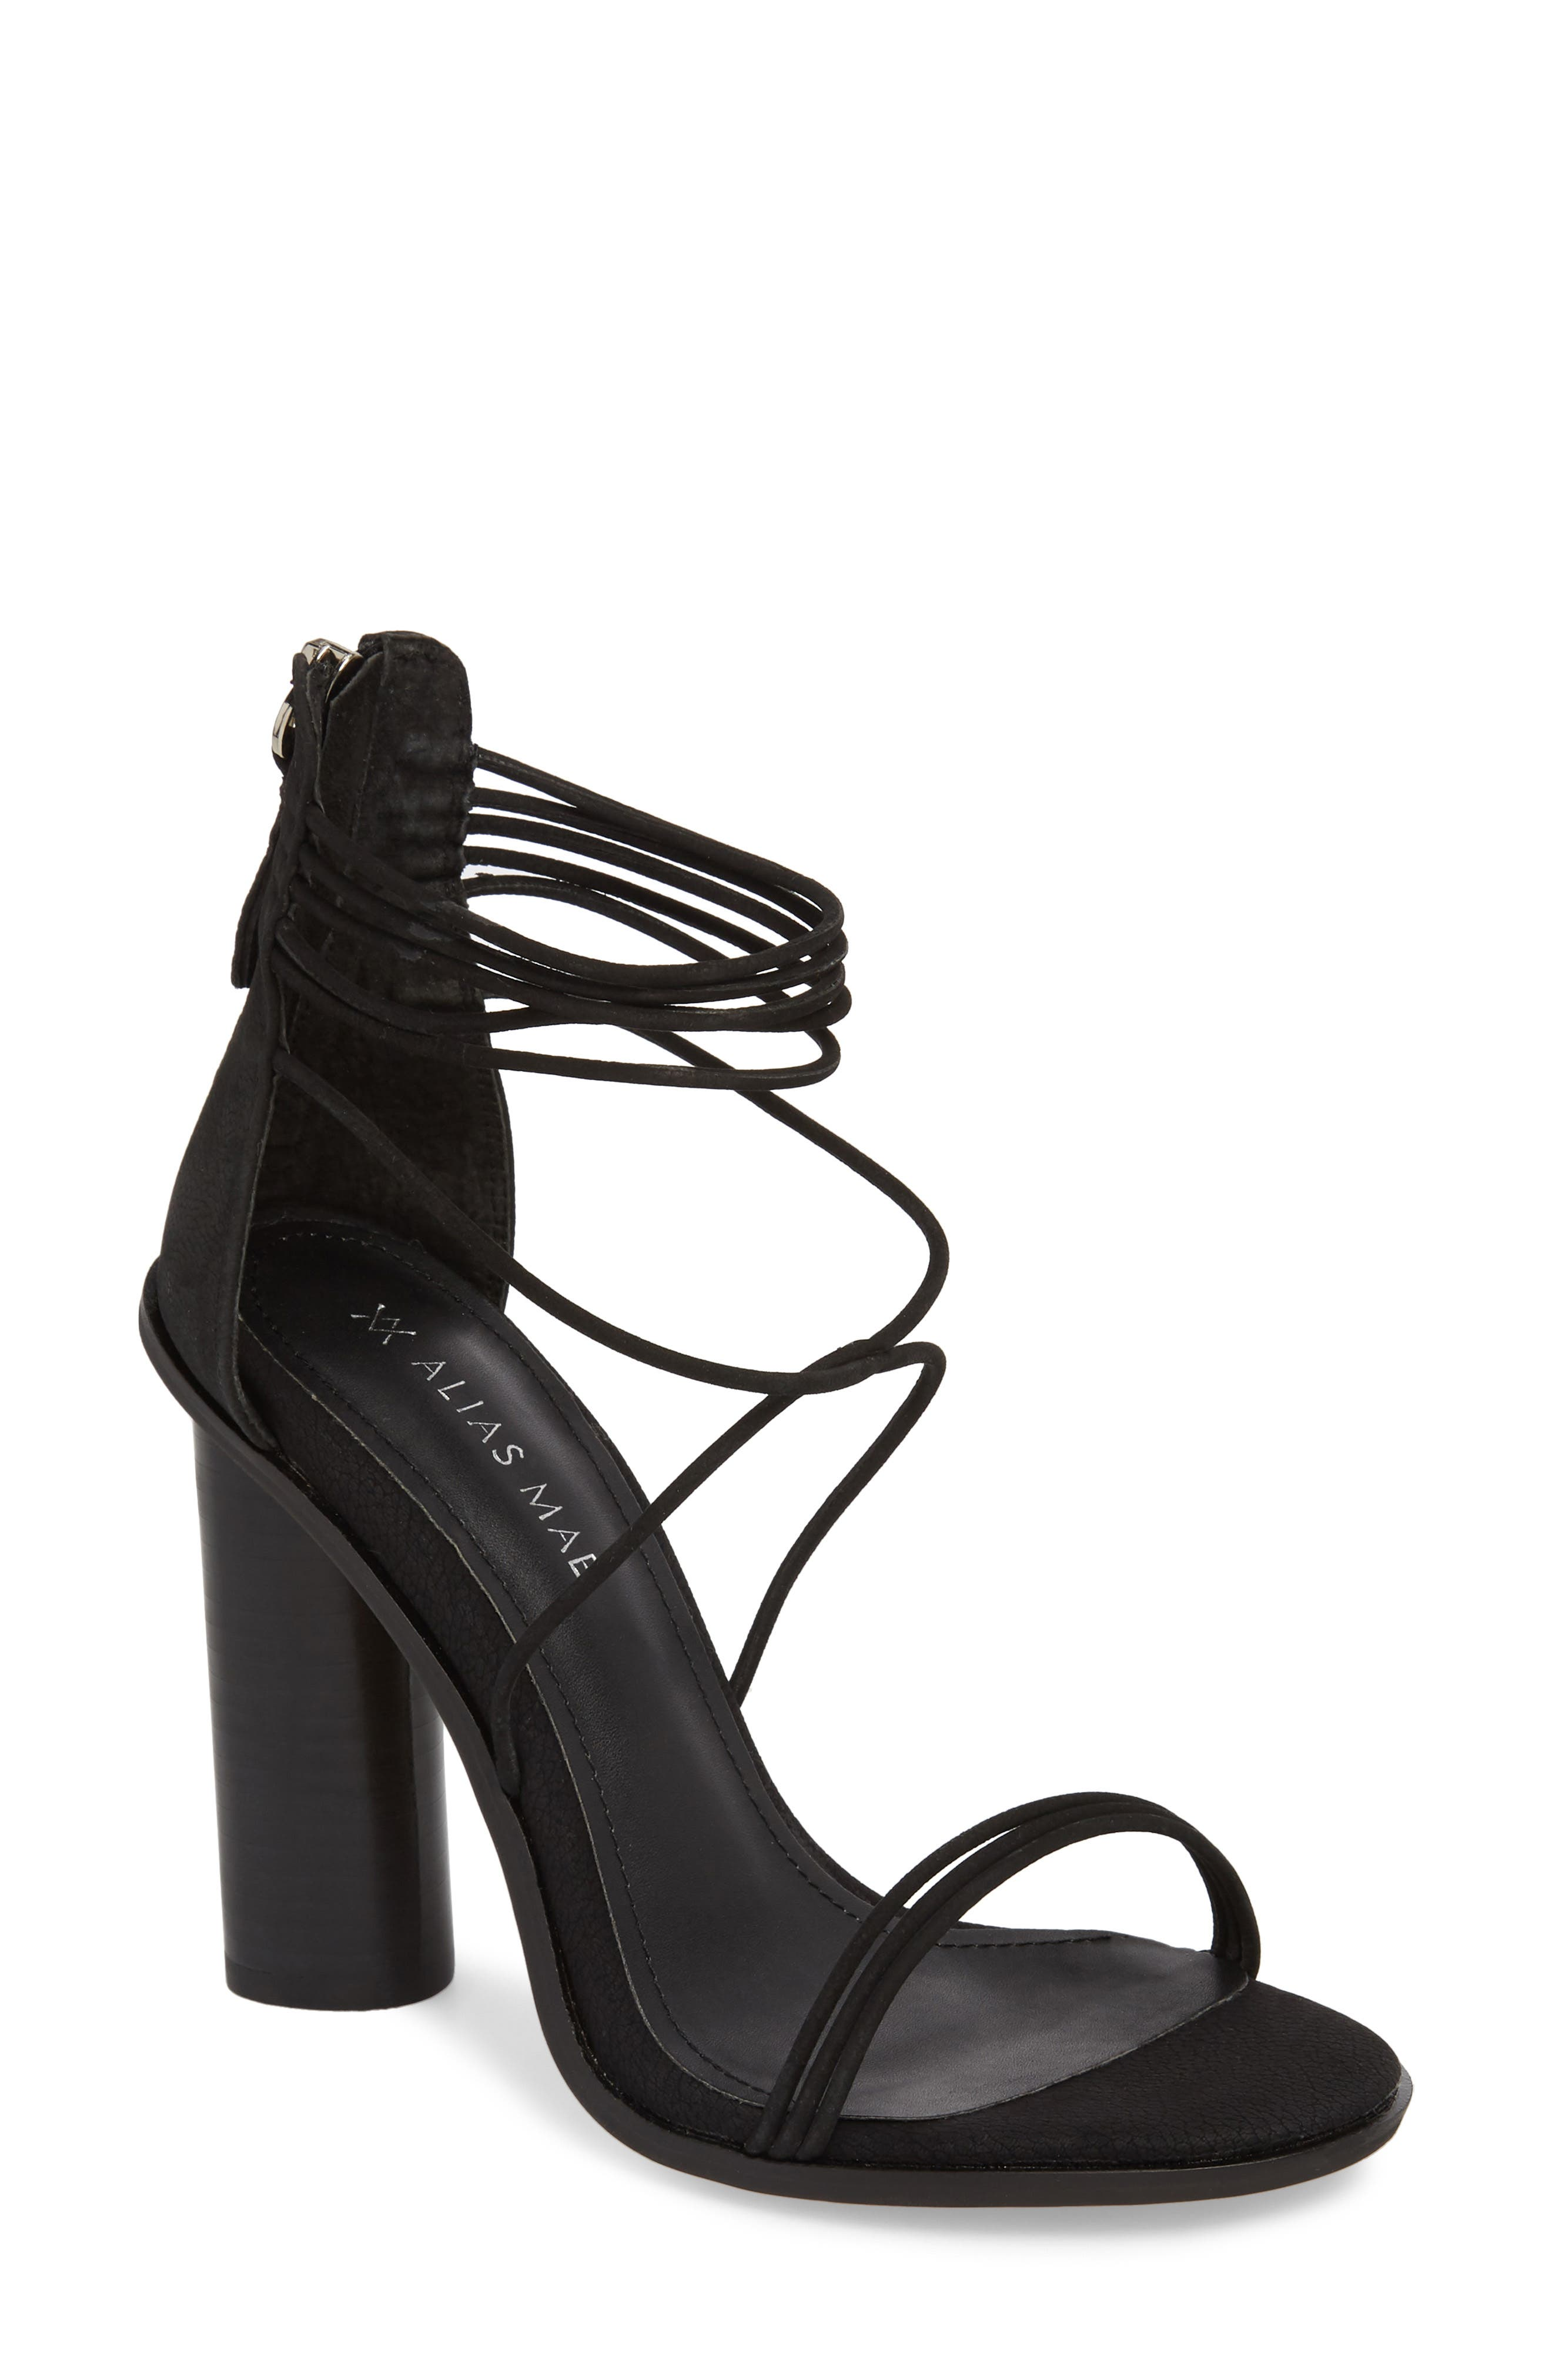 Aflux Tall Strappy Sandal,                         Main,                         color, Black Nubuck Leather